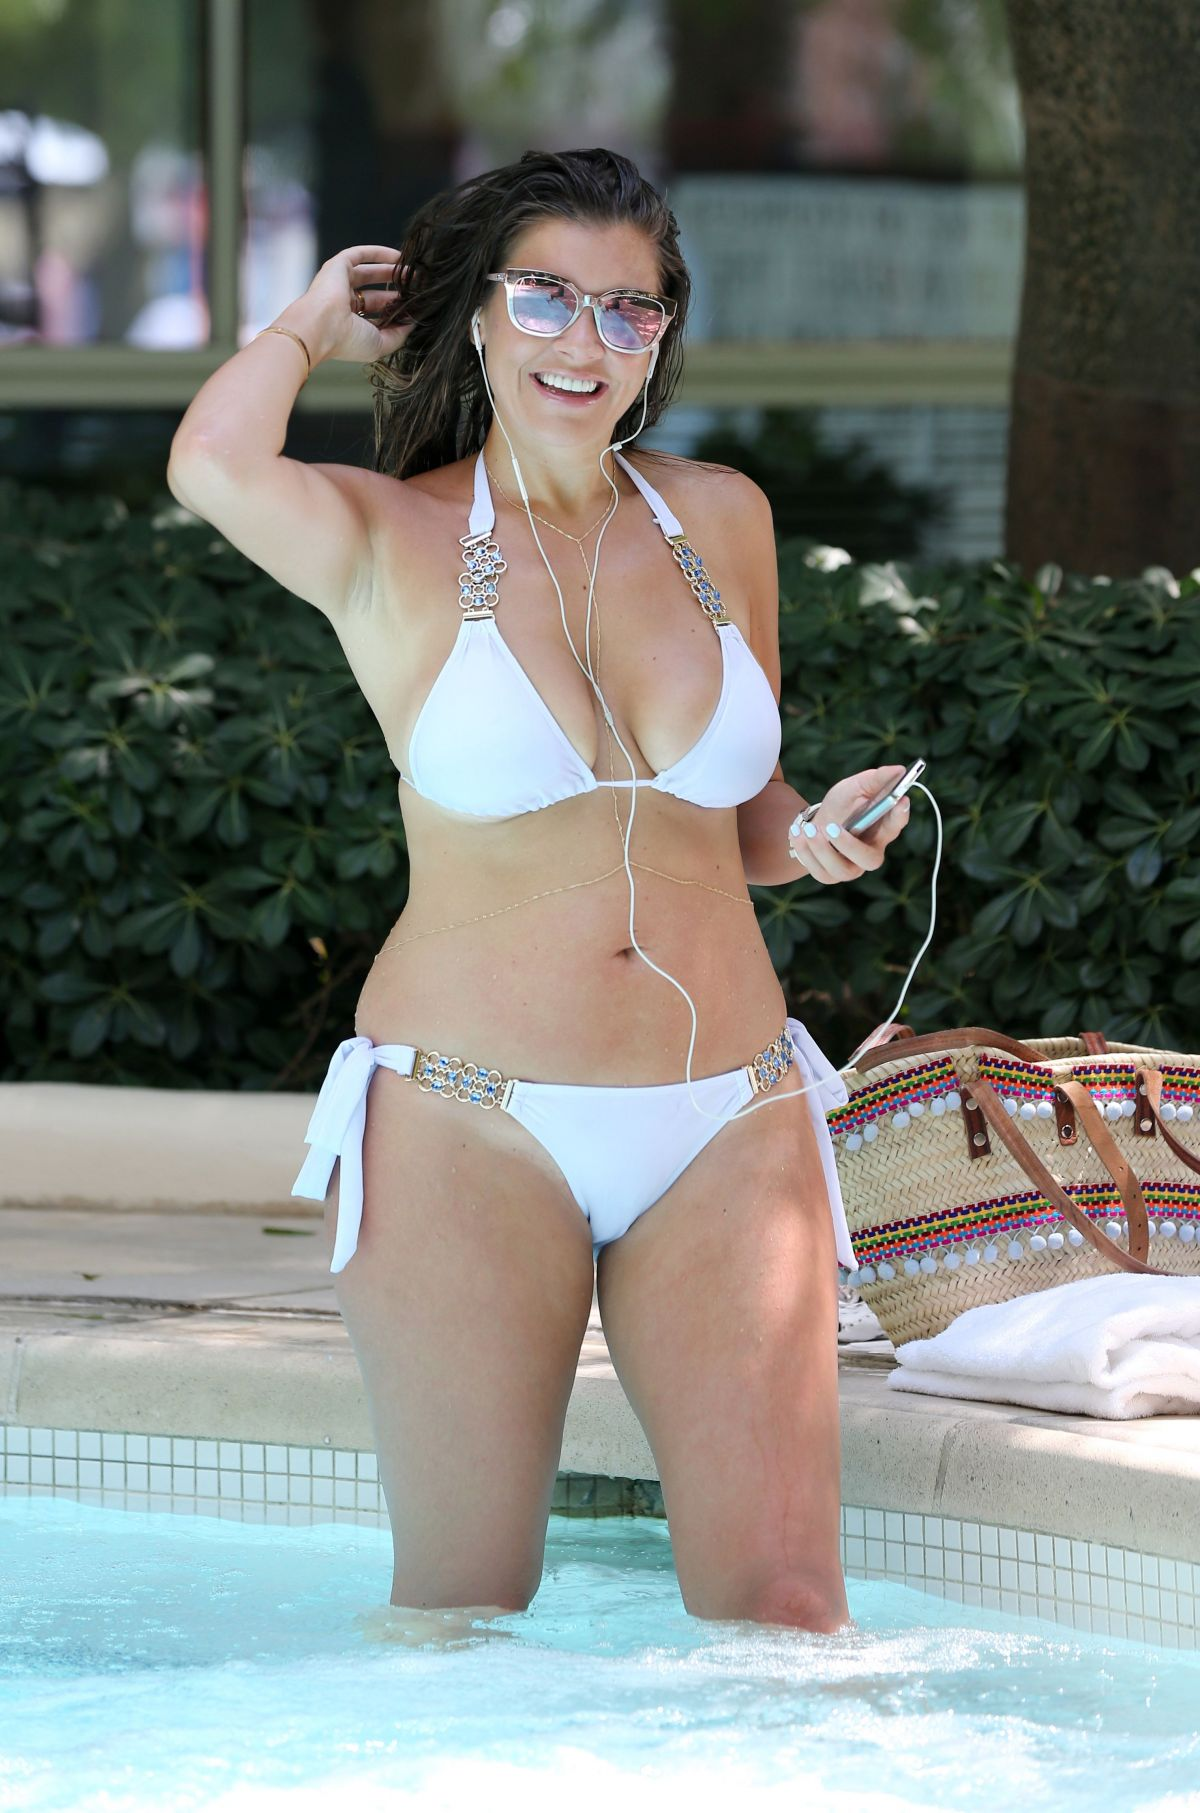 imogen thomas in bikini in a hot tub at her hotel in las vegas 09/29